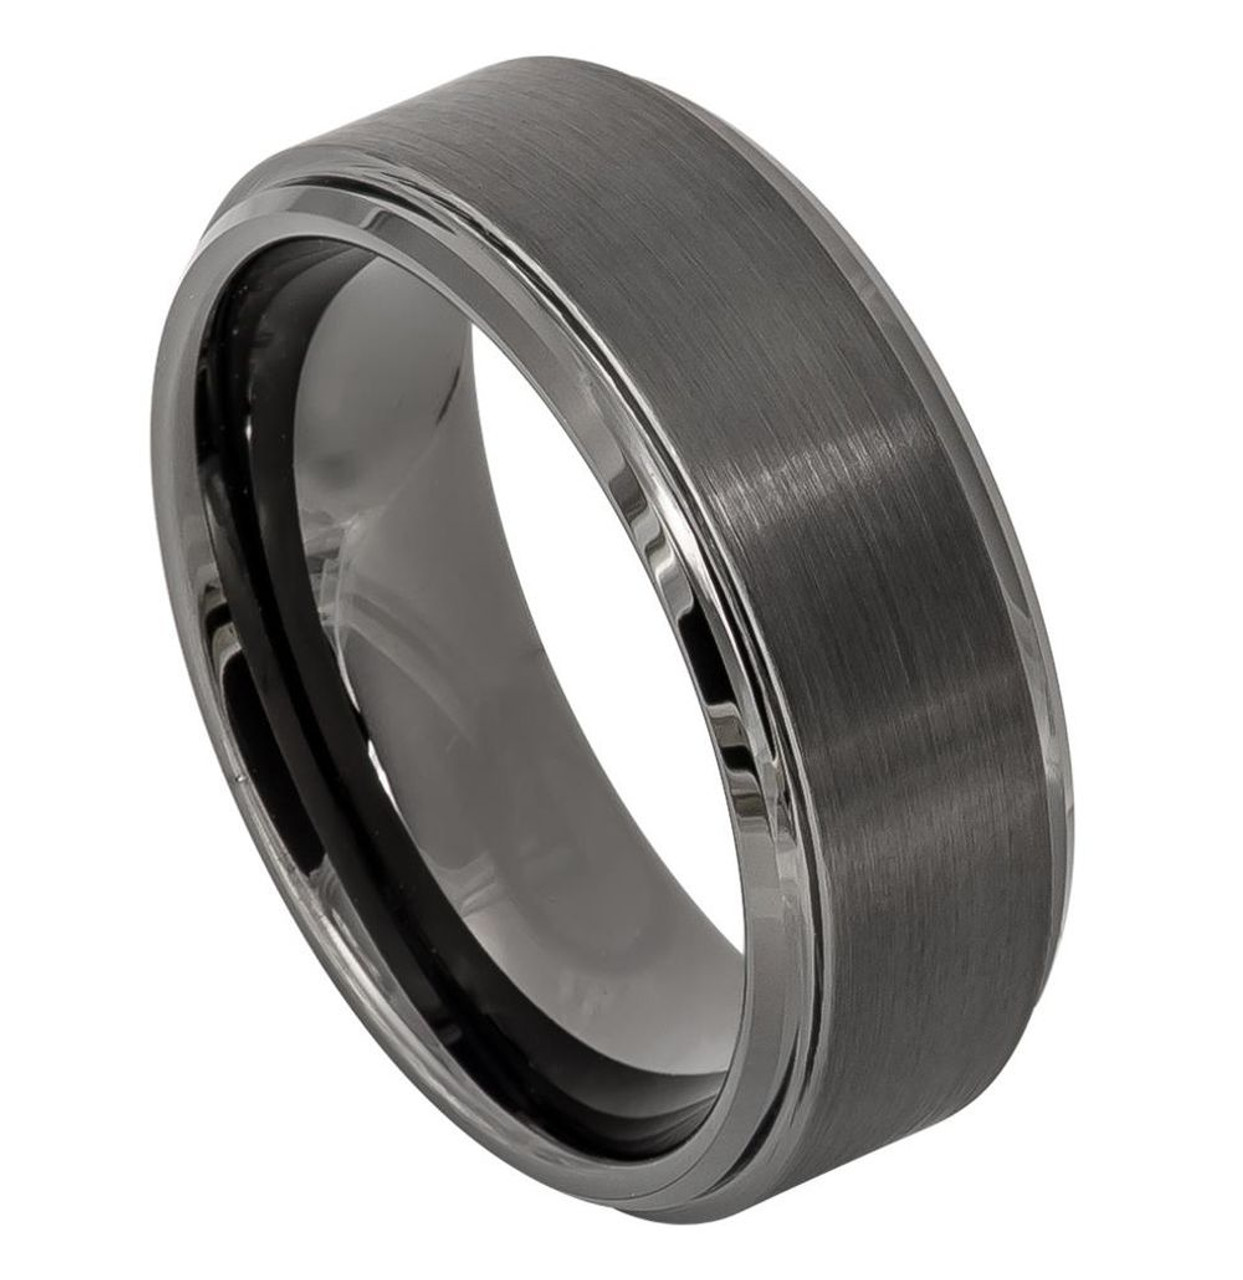 Ring Size 12 Security Jewelers Tungsten 8mm Beveled Band with Satin Center Size 12